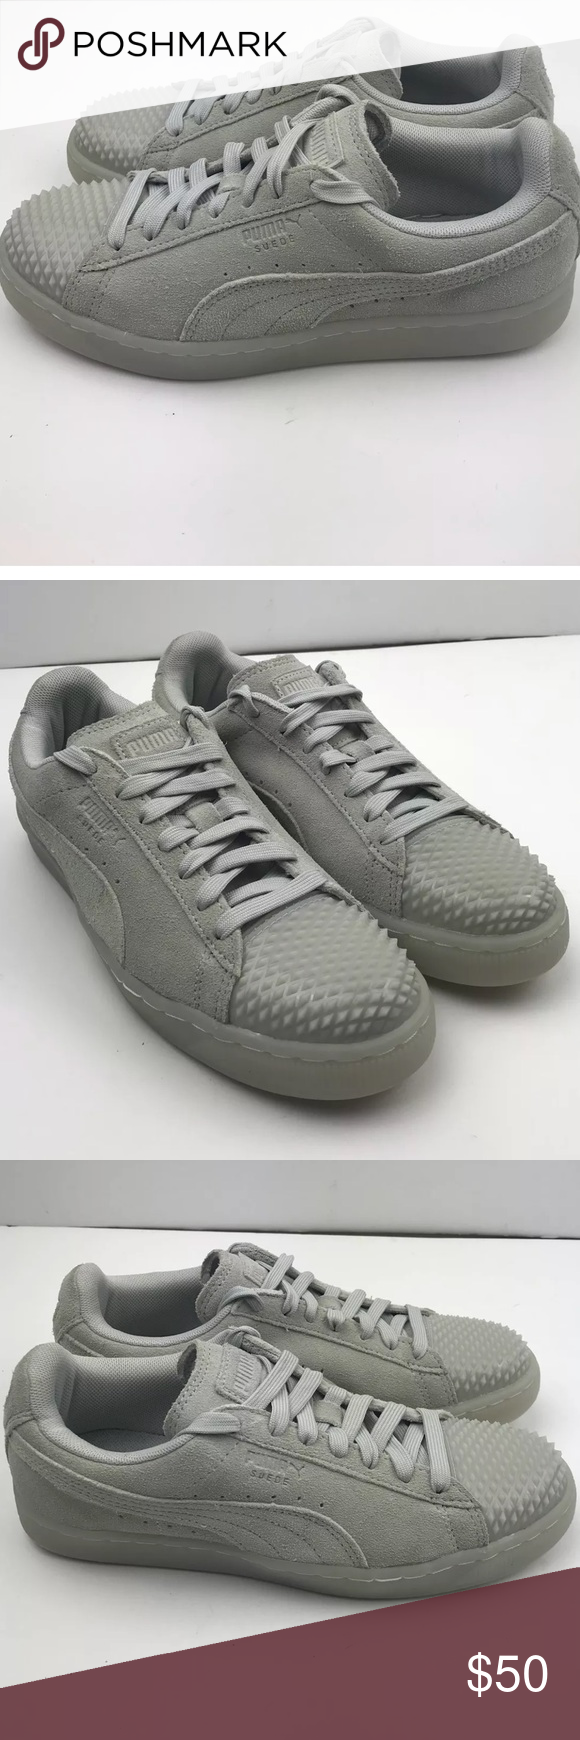 ce60a41b PUMA Suede Jelly Womens Trainers Lace up Gray suede puma sneaker ...